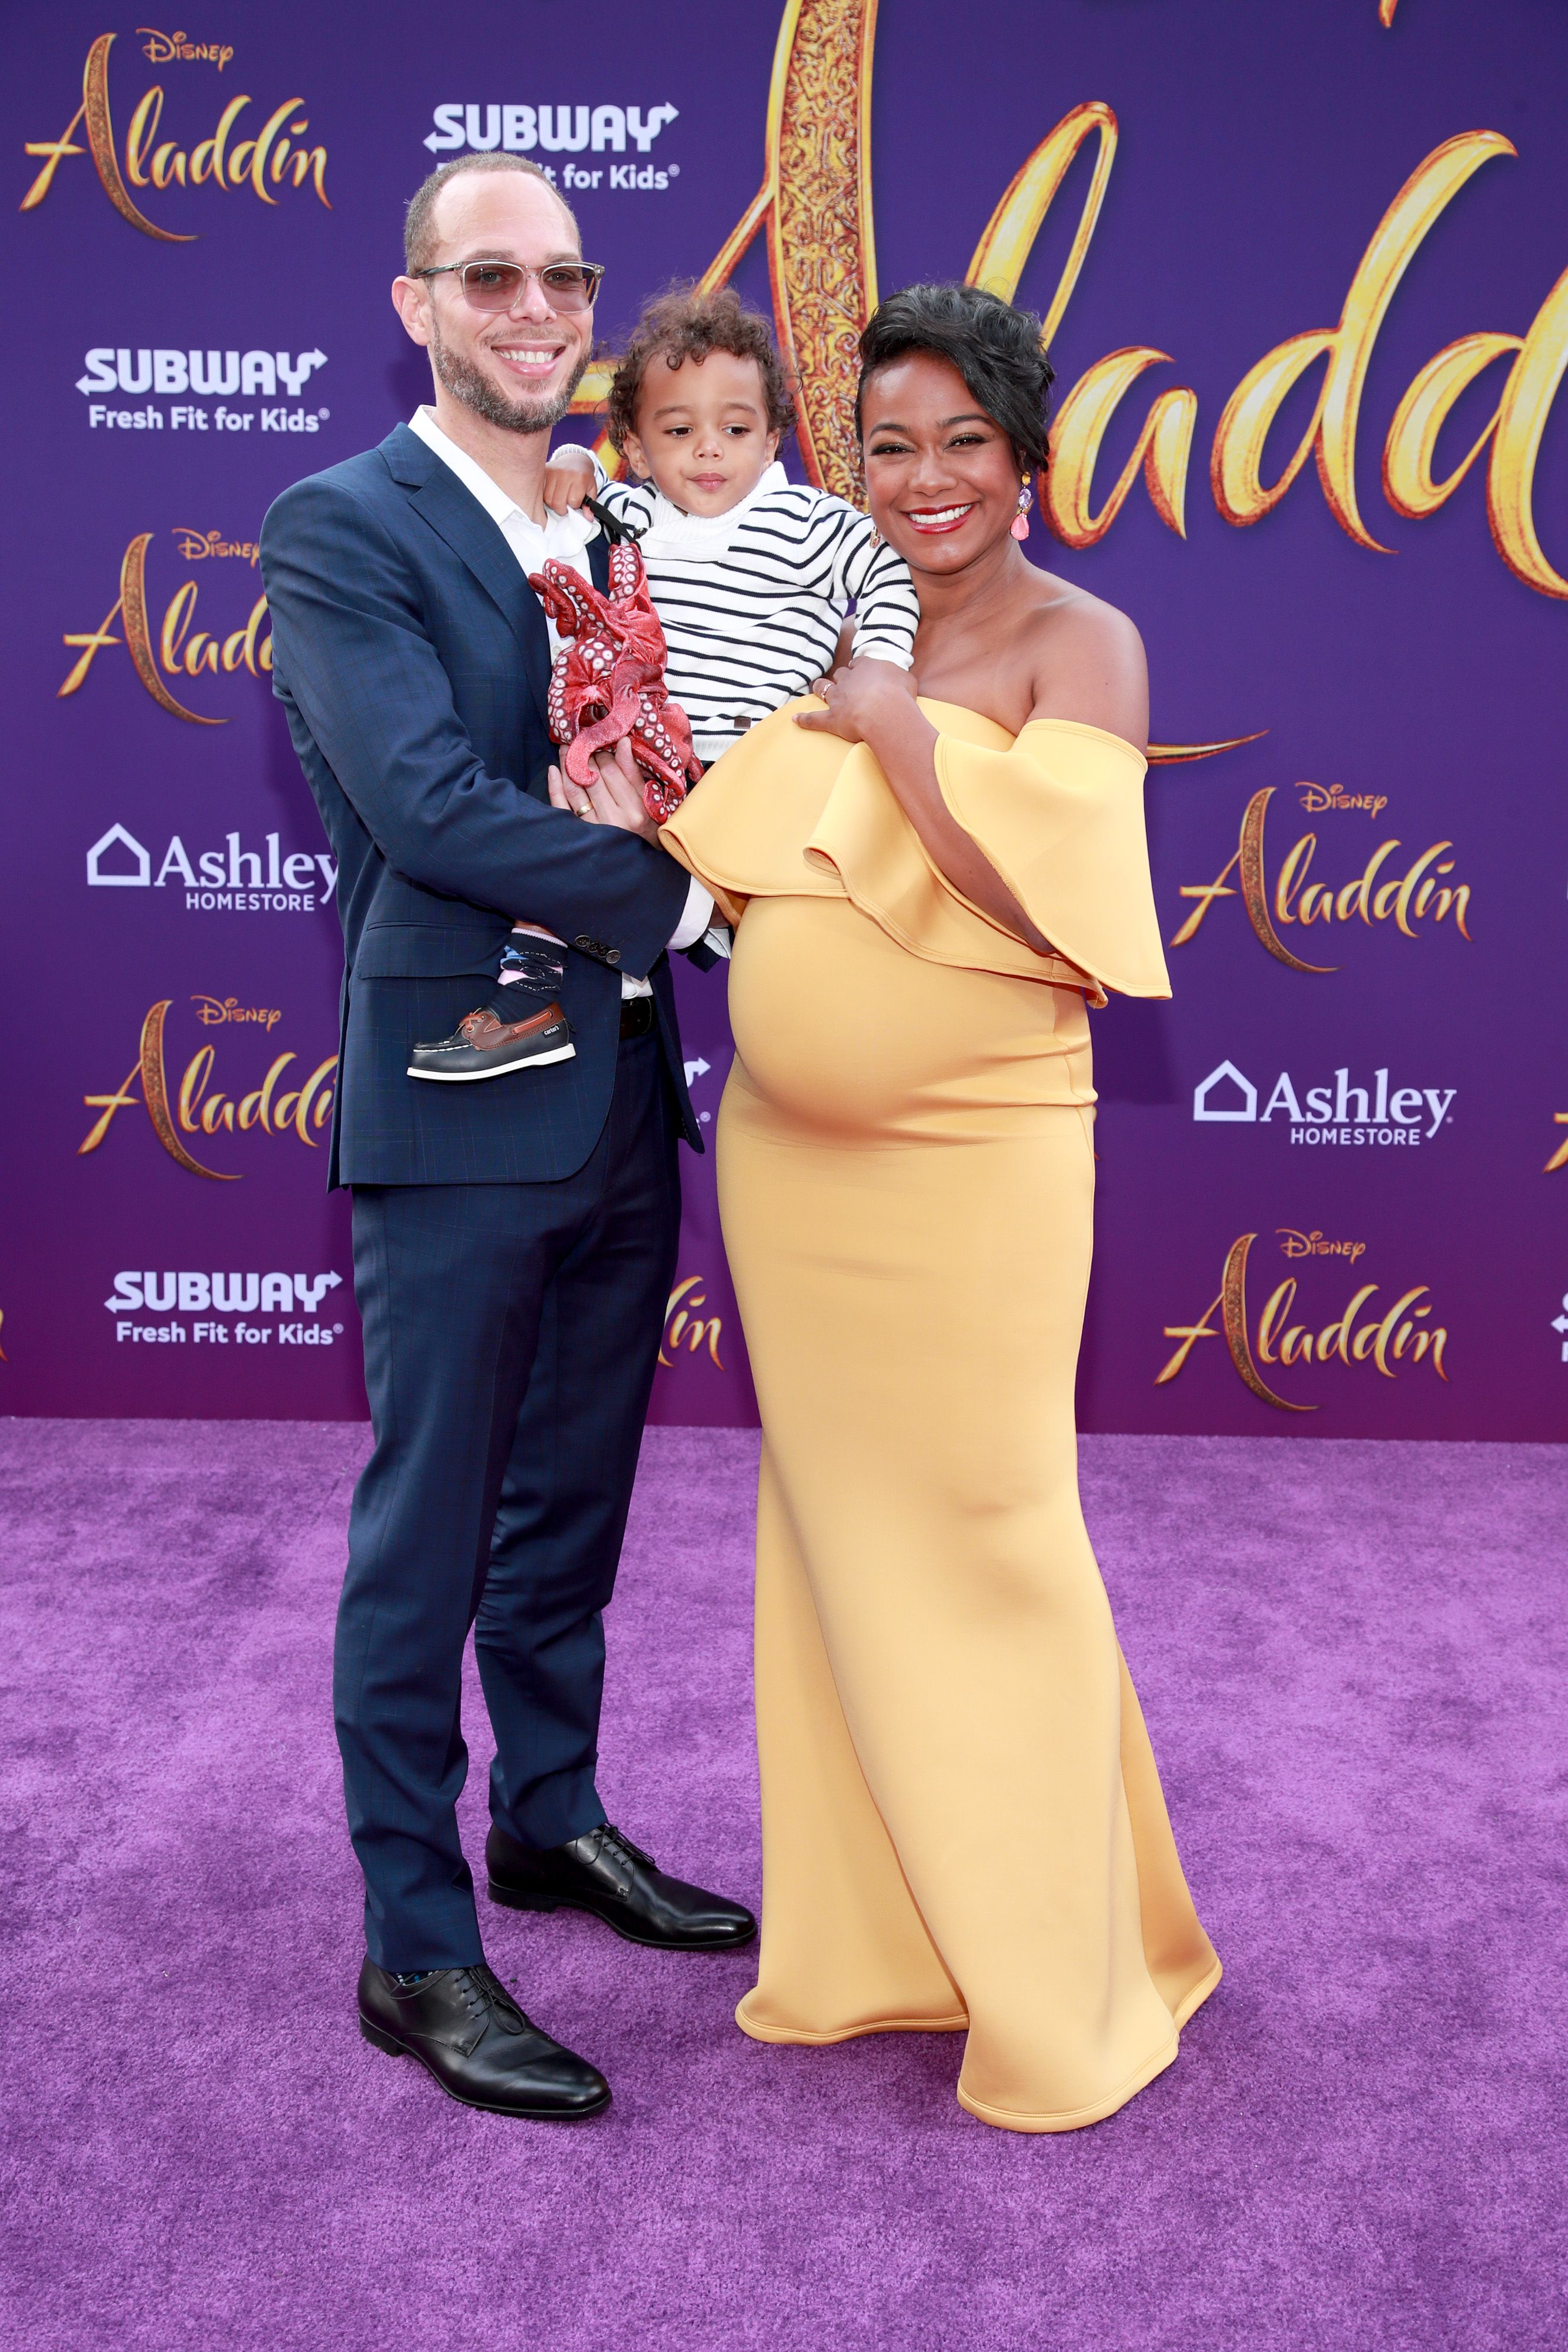 """Tatyana Ali, husband Vaughn Rasberry, and son Edward at the premiere of """"Aladdin"""" in 2019 in Los Angeles 